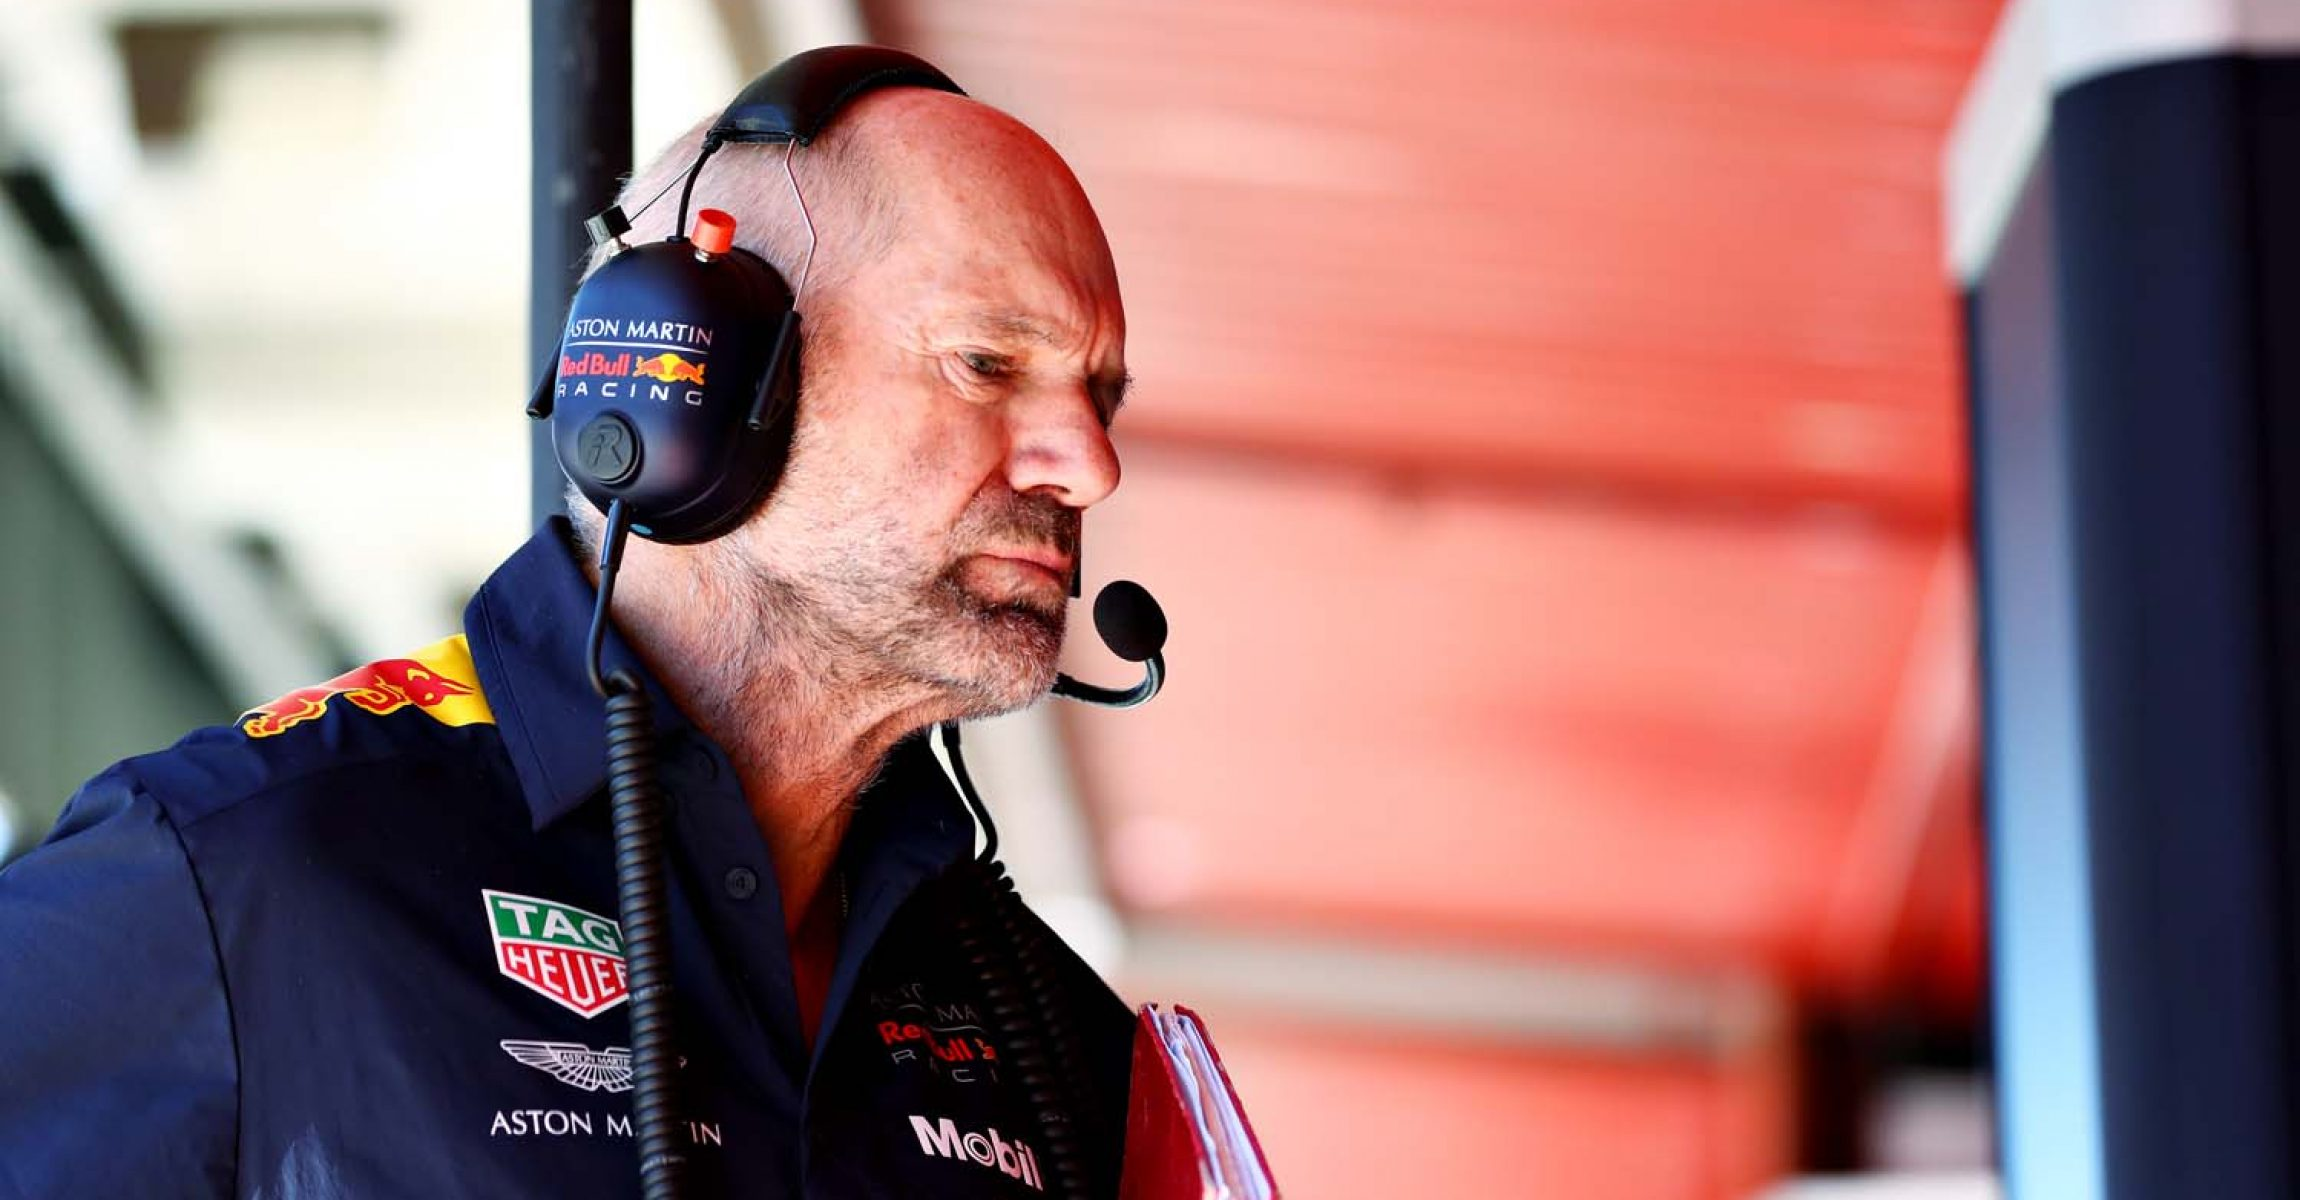 BARCELONA, SPAIN - MAY 10: Adrian Newey, the Chief Technical Officer of Red Bull Racing looks on itg during practice for the F1 Grand Prix of Spain at Circuit de Barcelona-Catalunya on May 10, 2019 in Barcelona, Spain. (Photo by Mark Thompson/Getty Images) // Getty Images / Red Bull Content Pool  // AP-1Z9UE8PNW2111 // Usage for editorial use only // Please go to www.redbullcontentpool.com for further information. //